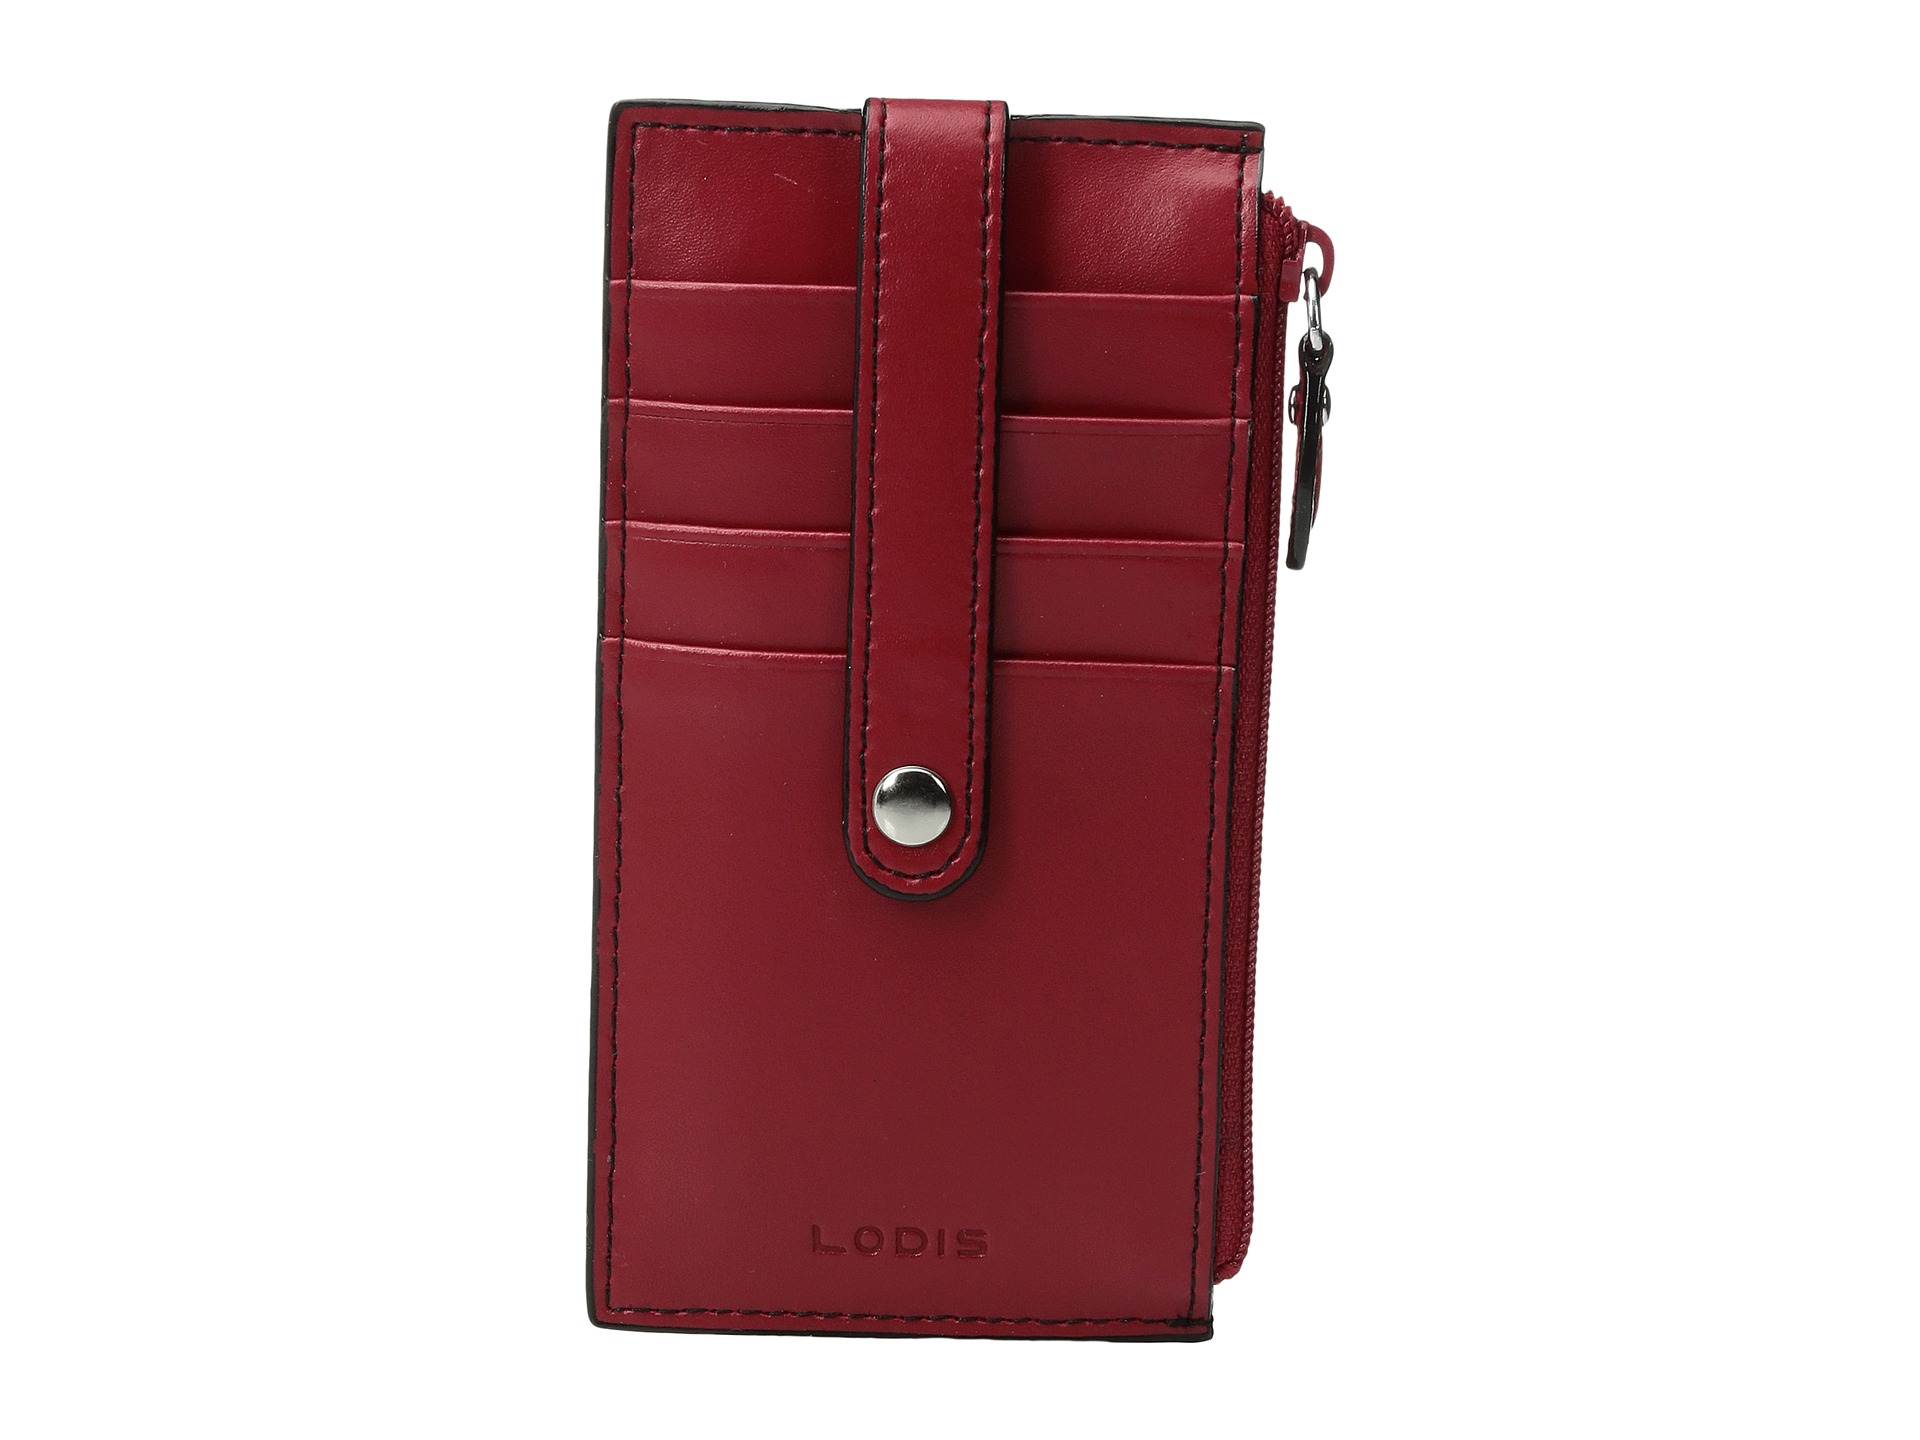 Lodis With a refined aesthetic and a modern sensibility, the Lodis collection strikes a balance between downtown chic and uptown sophistication. Established in , the collection has evolved to include handbags, laptop cases, business totes, clutches, wallets, and a range of small leather goods.